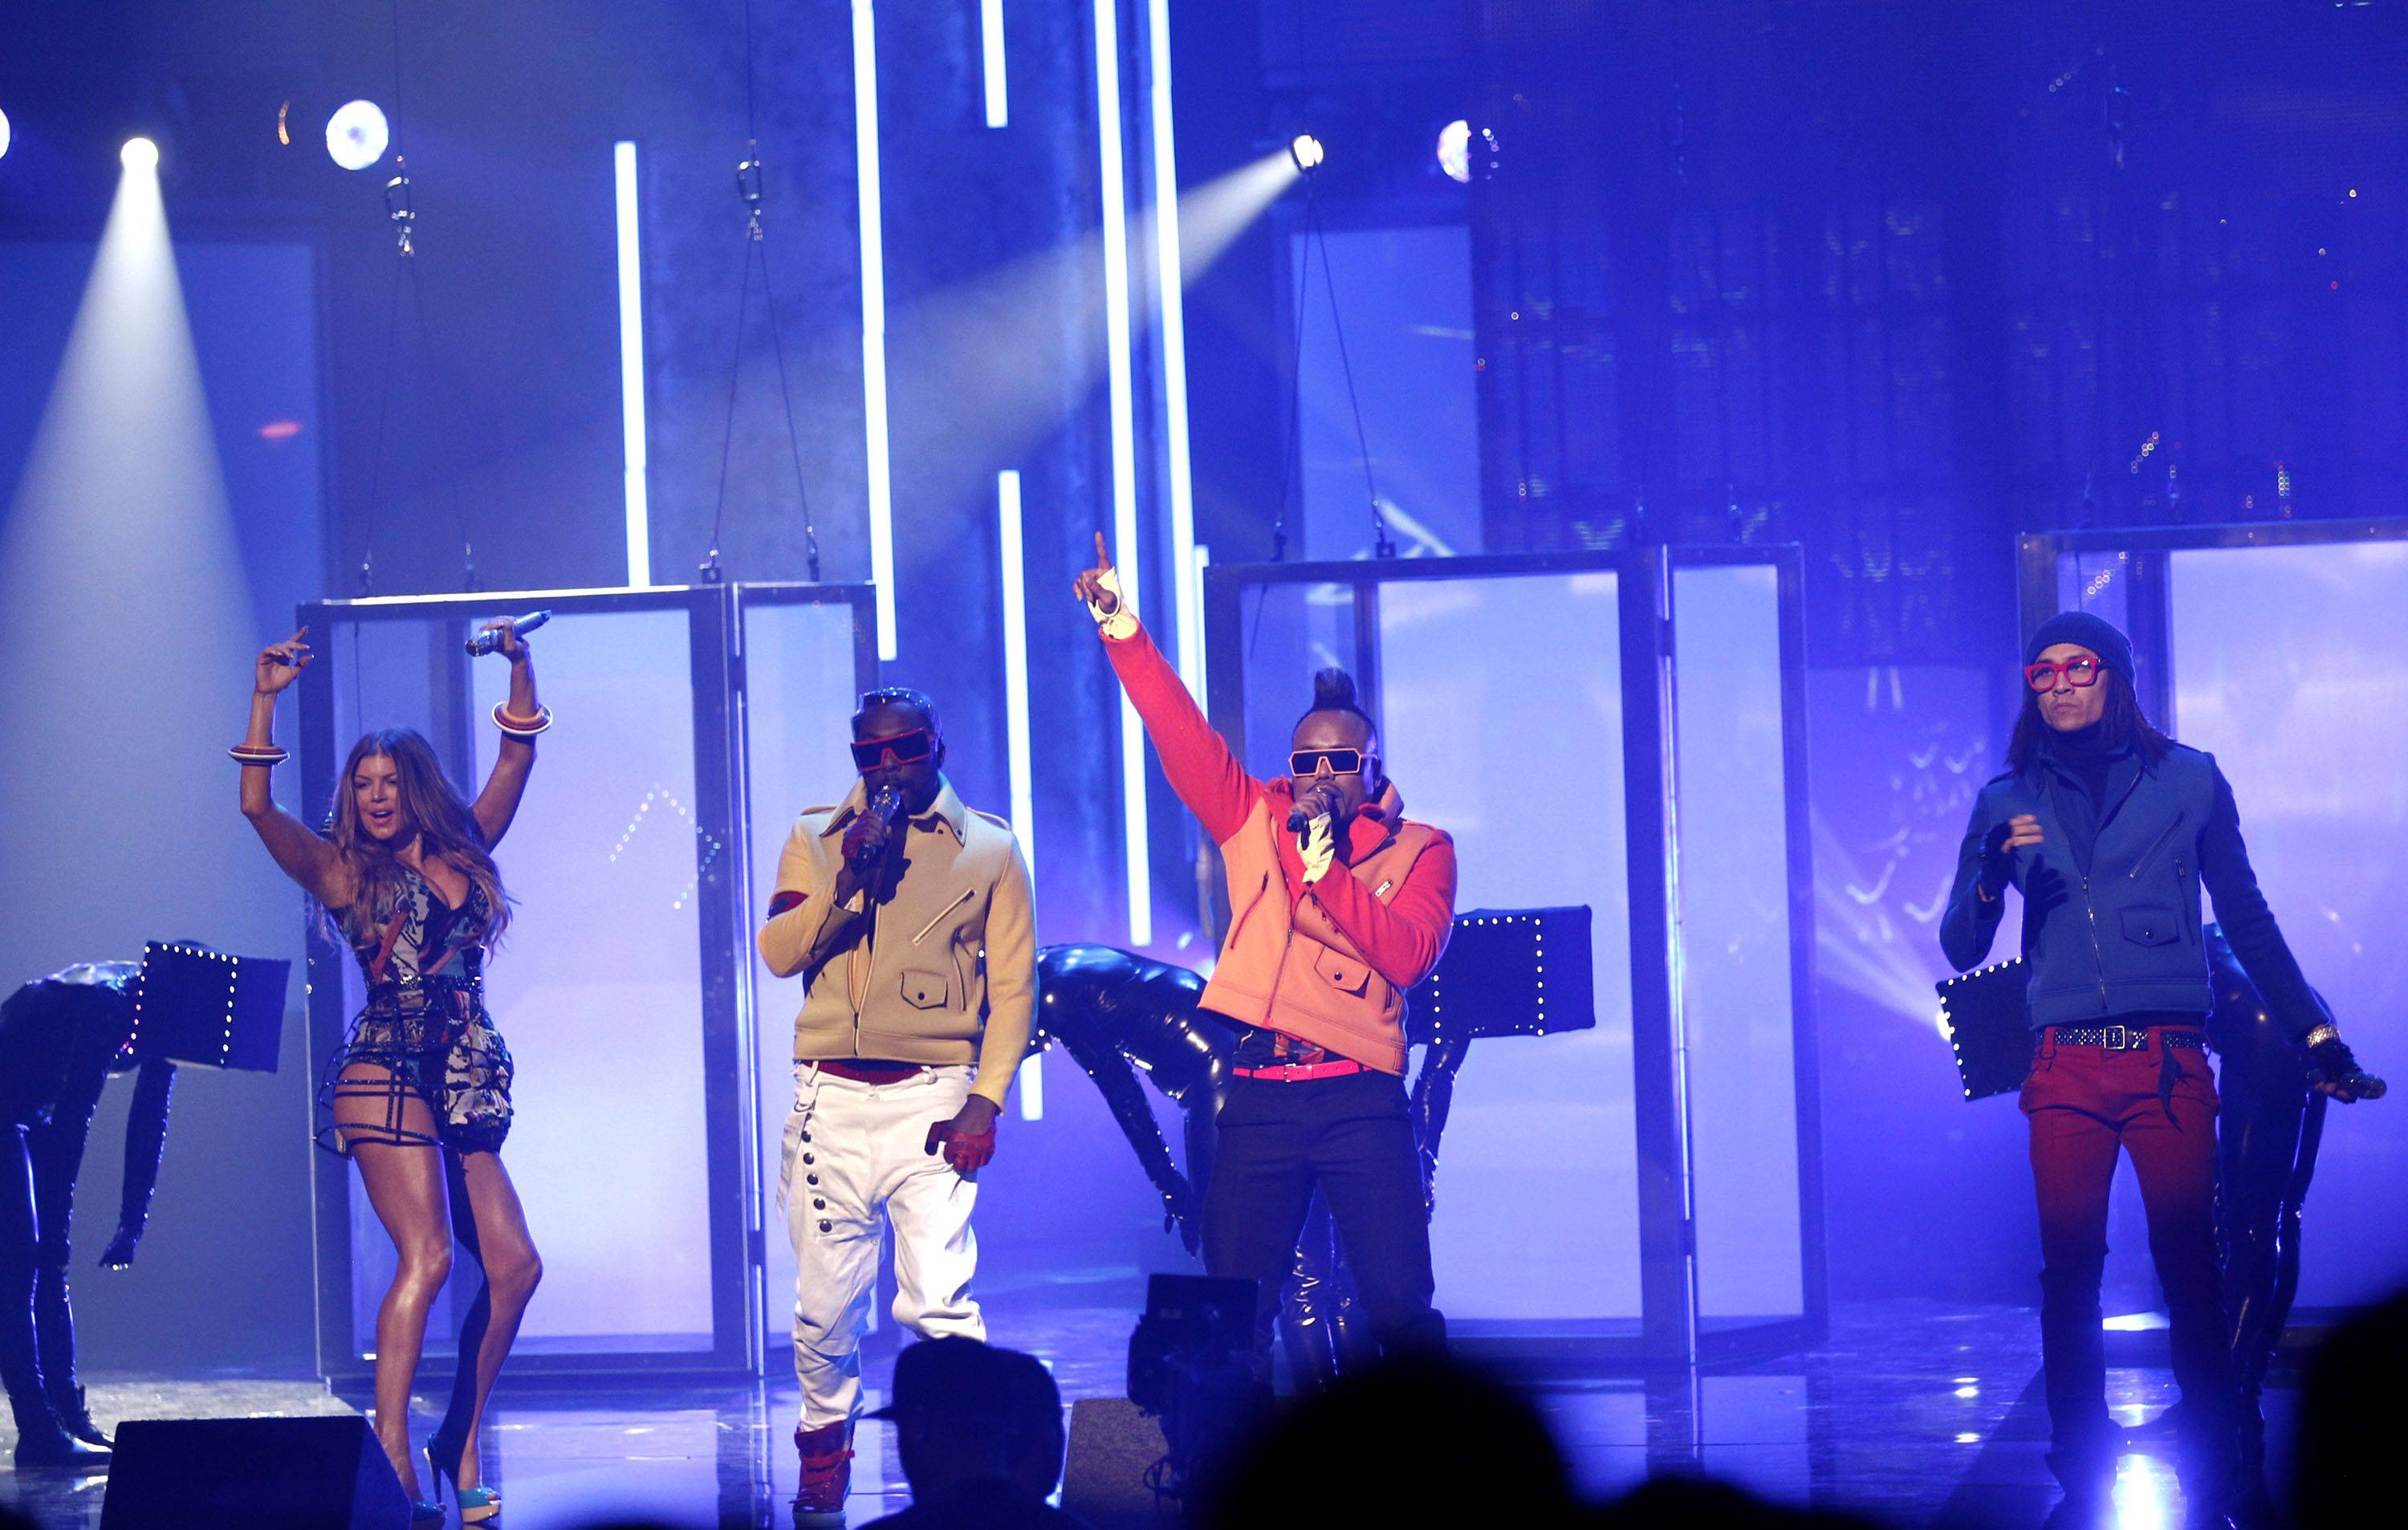 The Black Eyed Peas perform at the 38th Annual American Music Awards on Sunday, Nov. 21, 2010 in Los Angeles. From left are, Fergie, Will.i.am, Apl.de.ap, and Taboo.